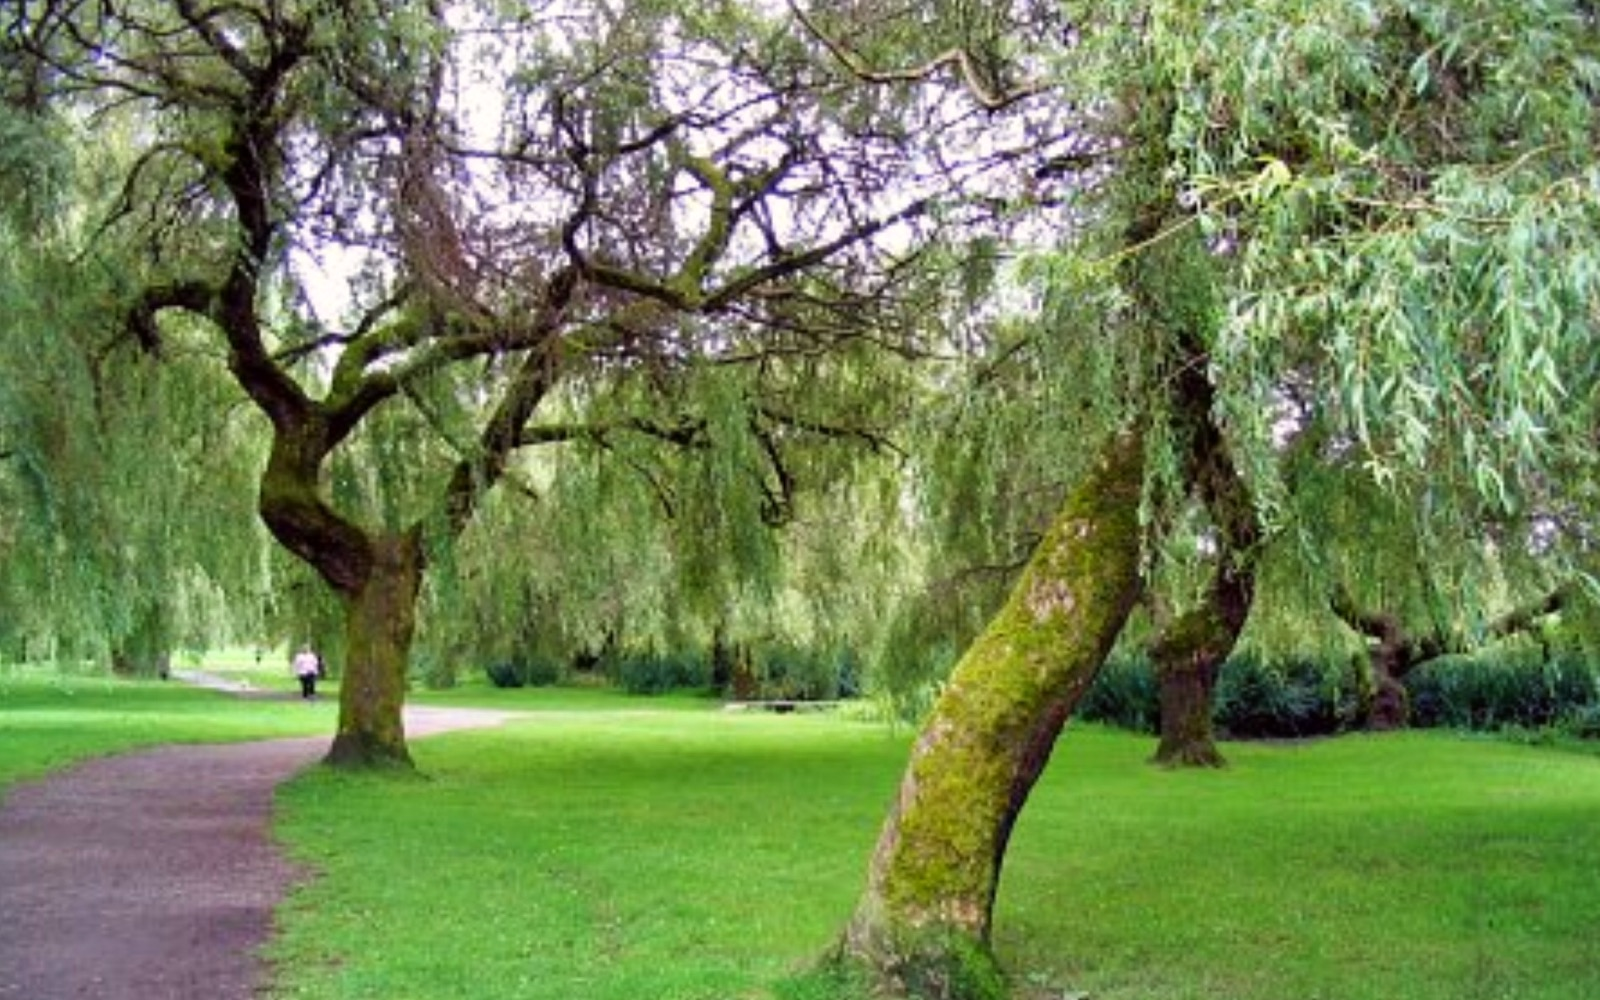 The trees at John Hendry Park, East Vancouver